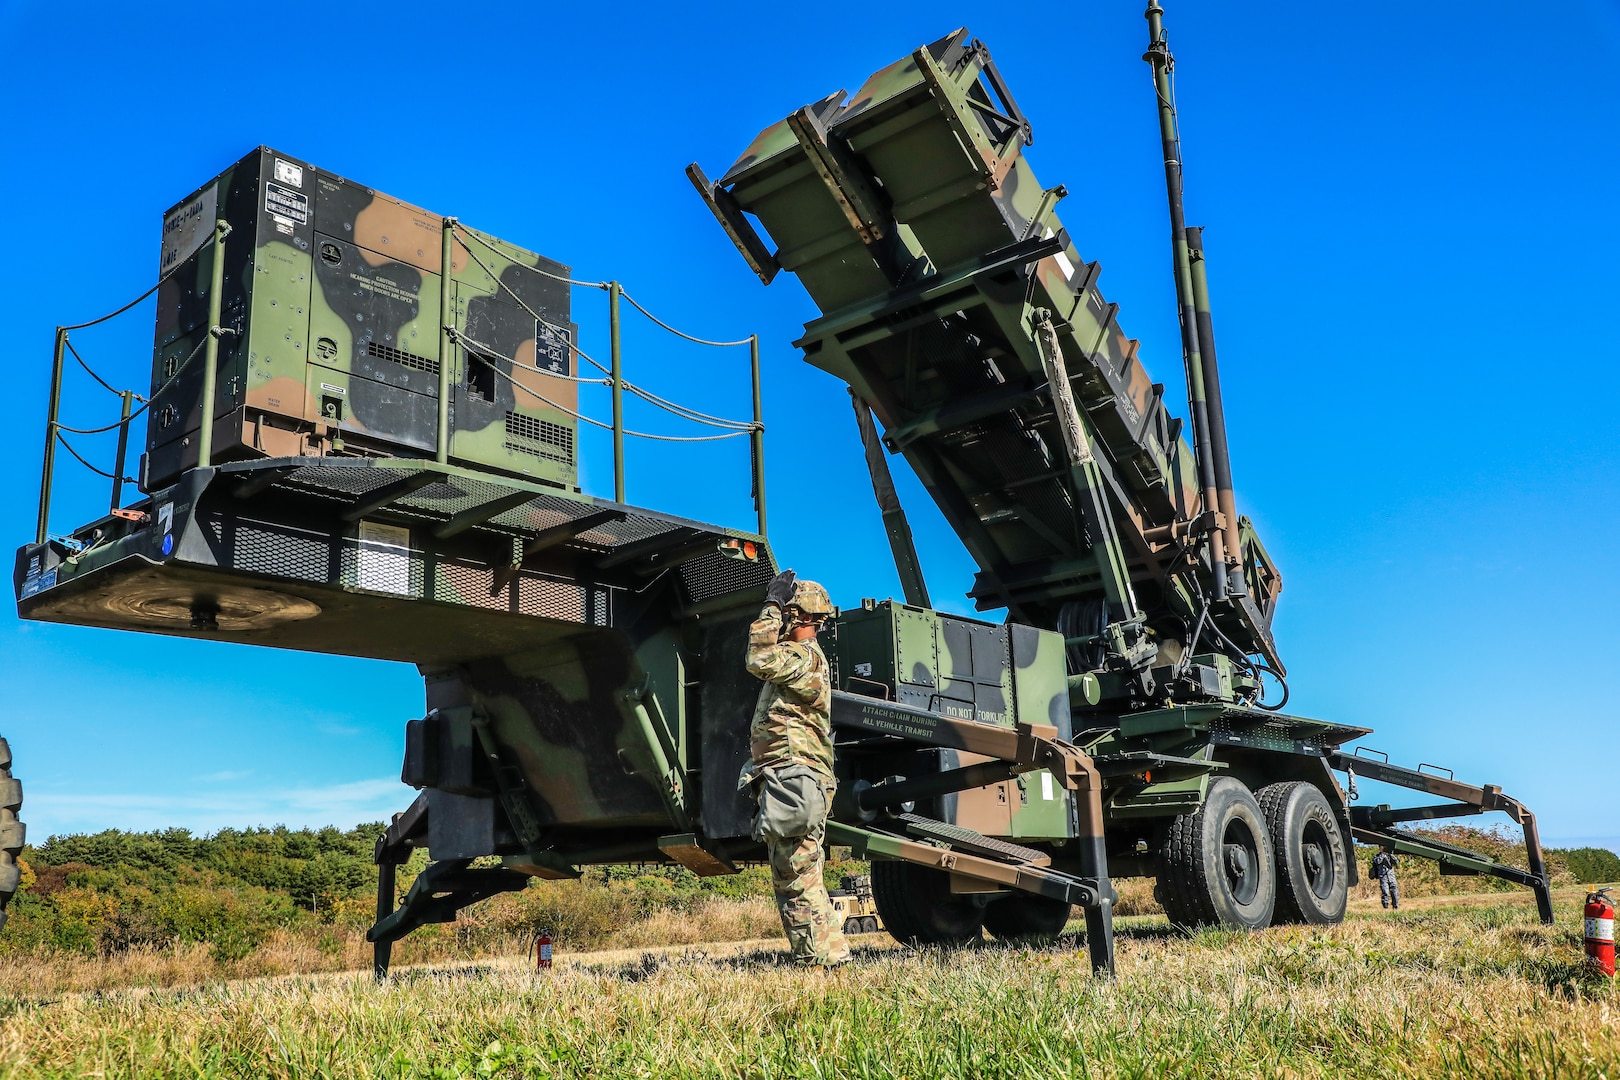 Soldiers with 1st Battalion, 1st Air Defense Artillery Regiment, rehearse battle drills with the PATRIOT long-range, all-altitude, all-weather air defense system capable of countering tactical ballistic missiles, cruise missiles and advanced aircrafts to enhance crew-drill proficiency during Keen Sword/Orient Shield 21 at Misawa Air Base, Japan, Oct. 28. KS/OS 21 is a joint expeditionary bilateral exercise, which allows Japan Self-Defense Forces and U.S. military forces to work together across a variety of areas, enhancing the interoperability of U.S. and Japan forces.